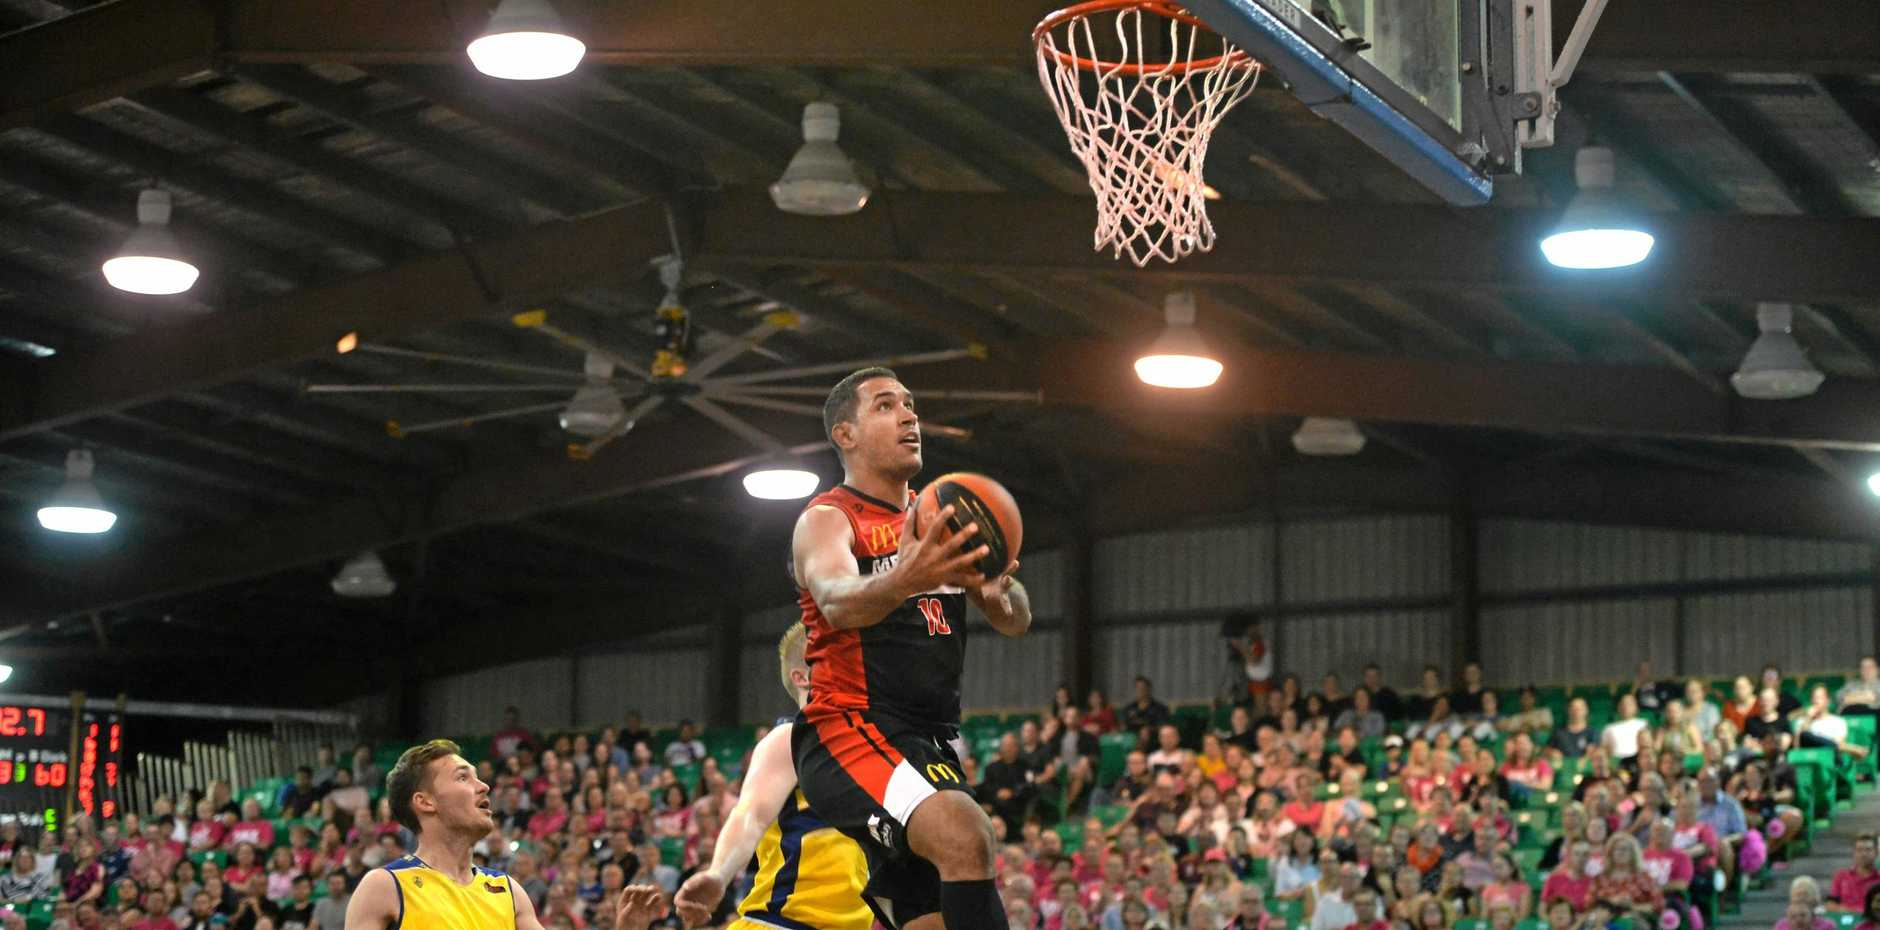 Mackay Meteors' Chris Cedar drives to the basket against the Townsville Heat in round 11 of the QBL at the Crater, Mackay on Saturday, July 8, 2018.